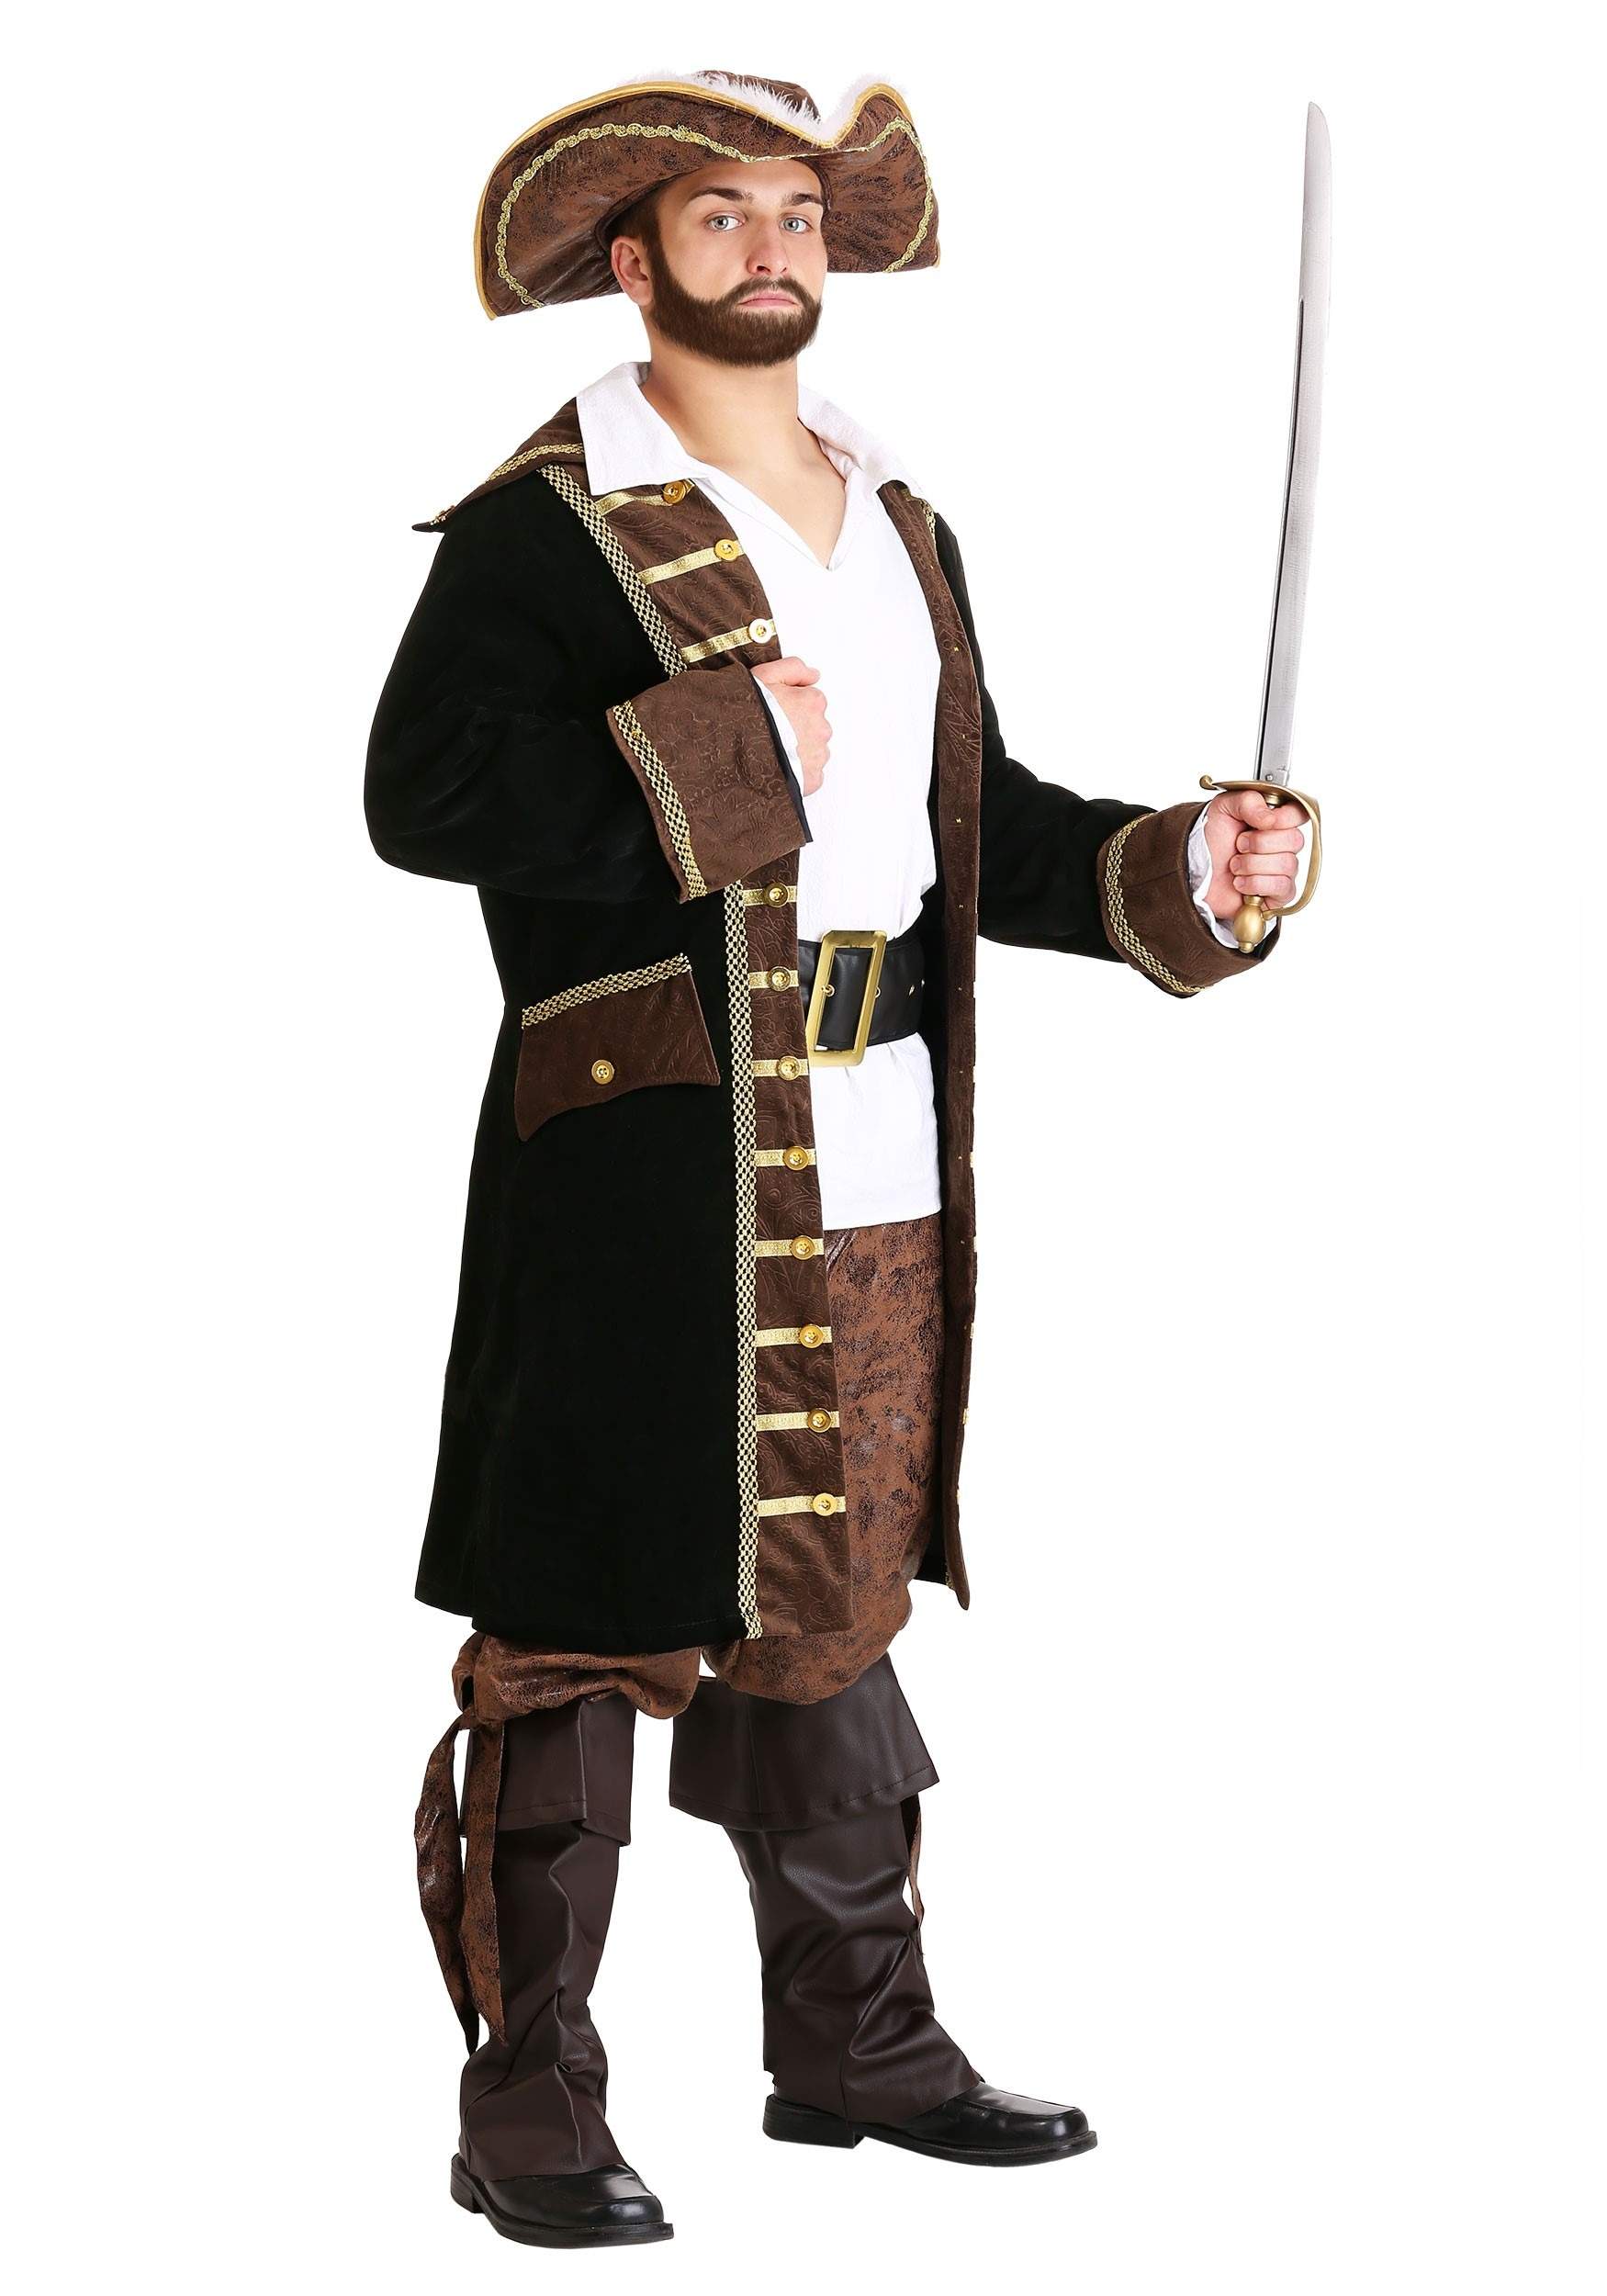 Mens Pirate Captain Costume  sc 1 st  Halloween Costume & Mens Pirate Captain Costume - Adult Halloween Pirate Costumes